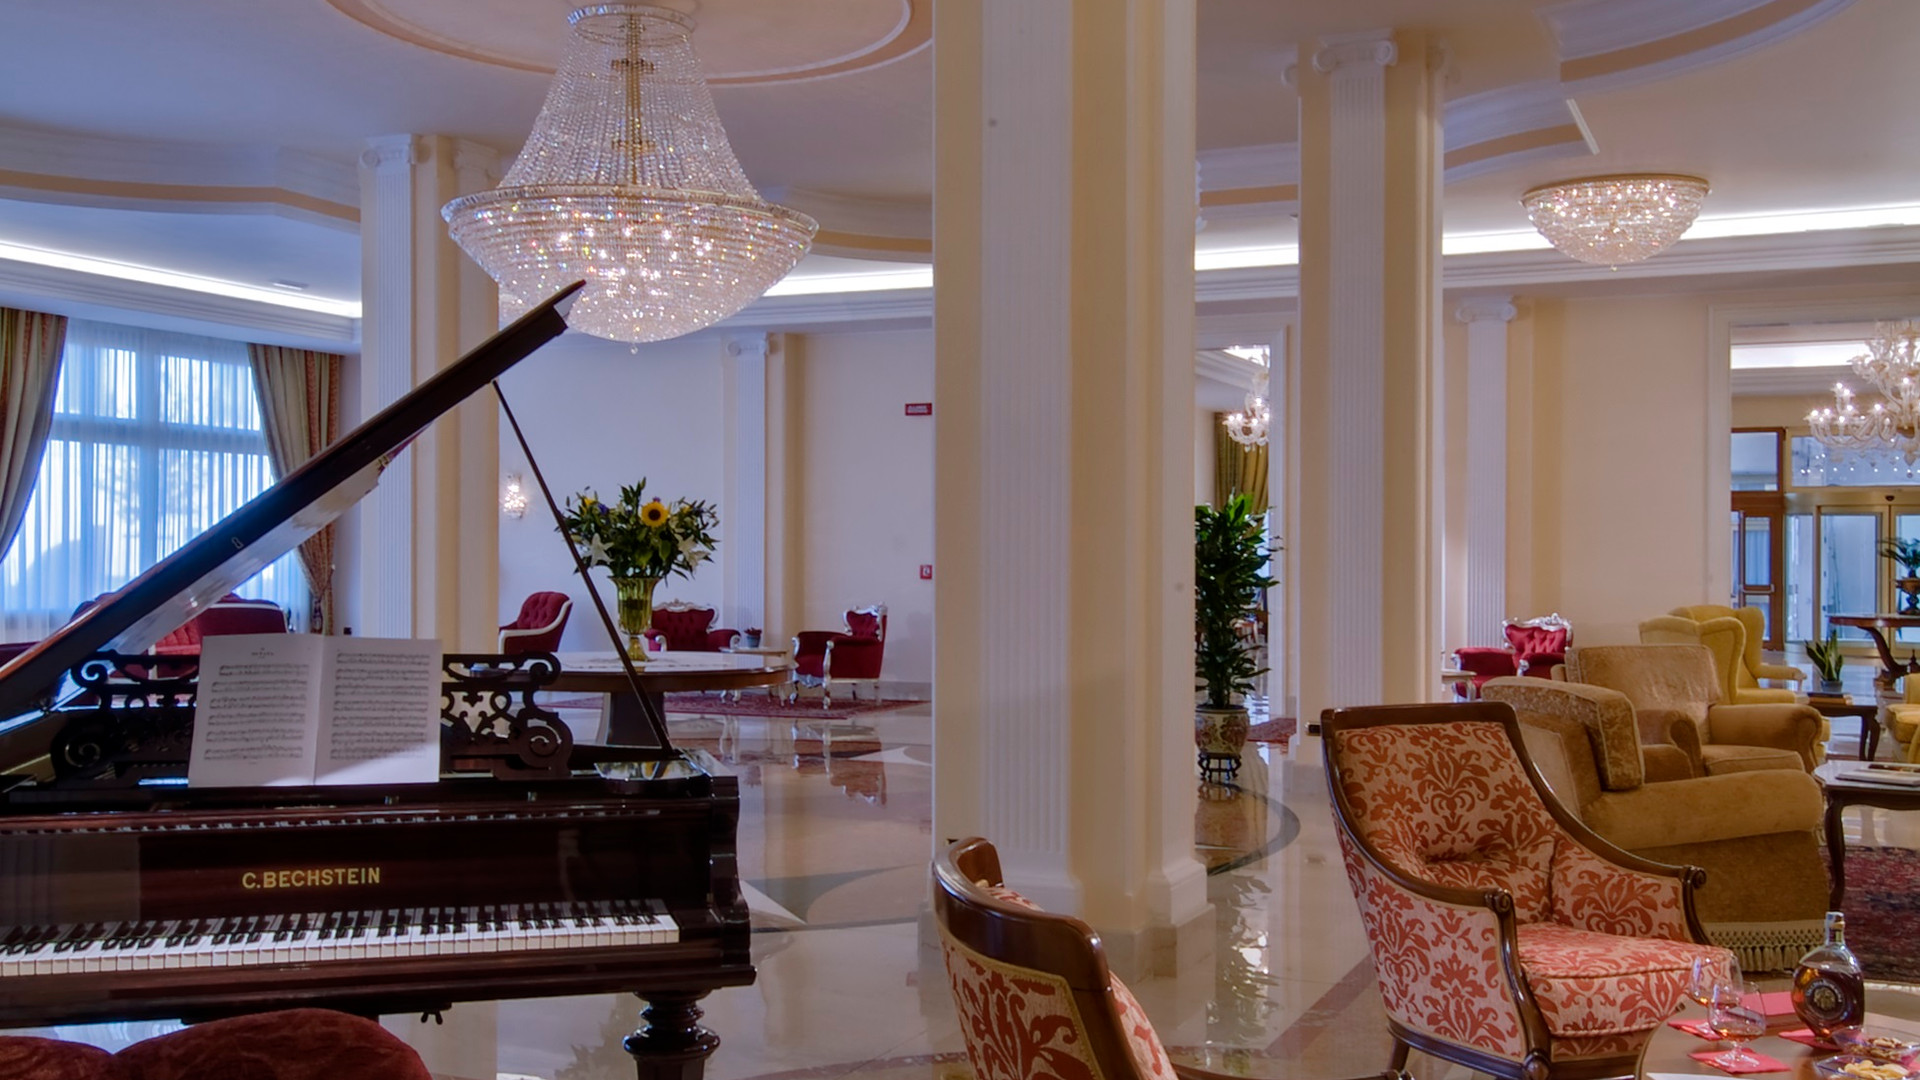 hotel-all-alba-hall-pianoforte.jpg